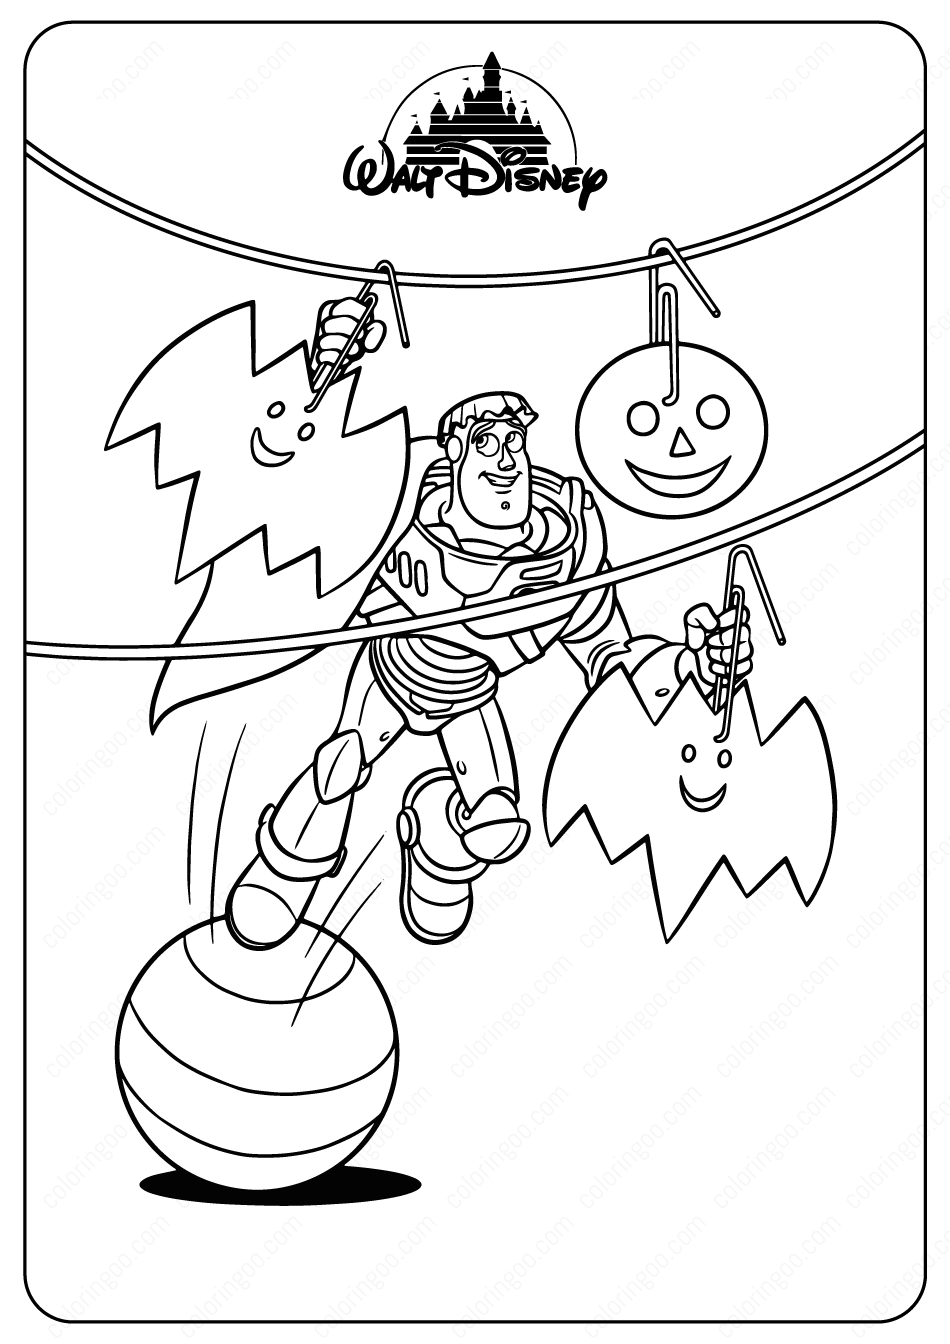 coloring pages toy story coloring pages toy story free printable coloring pages story toy coloring pages